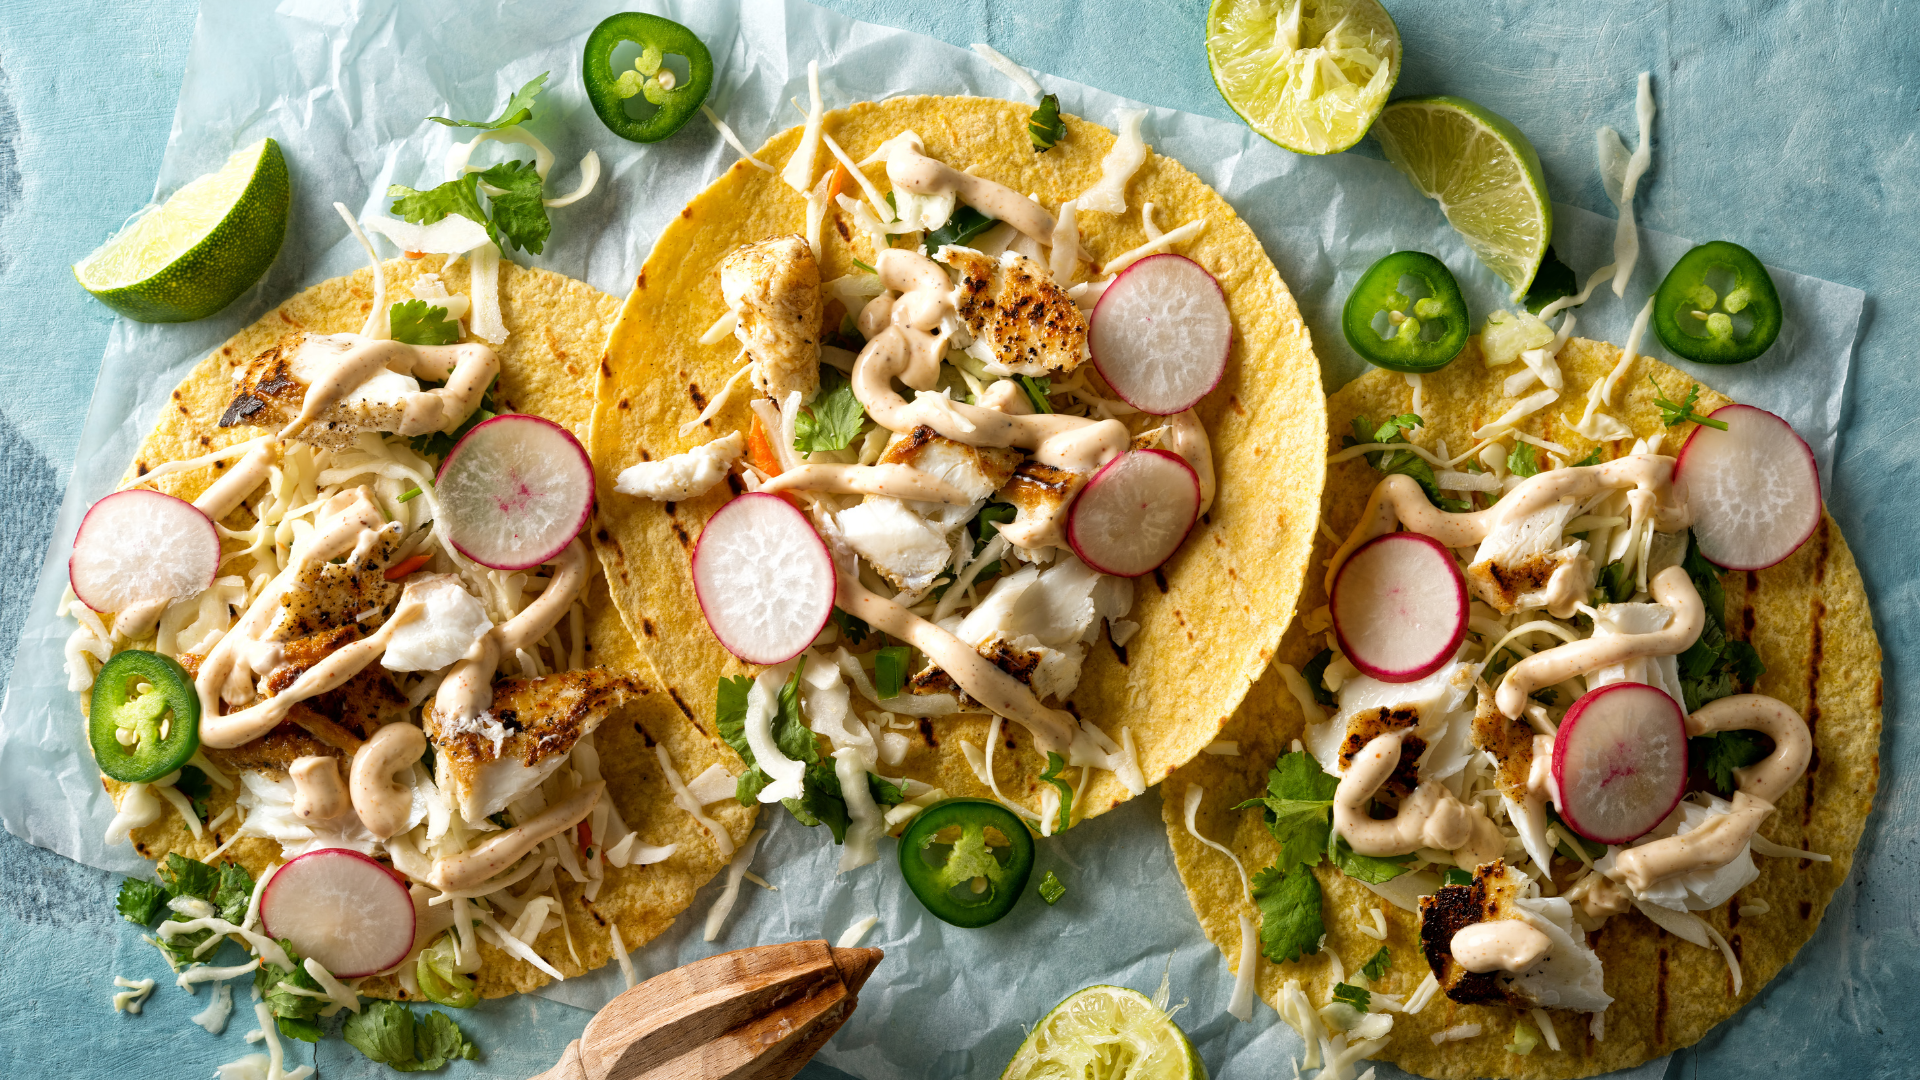 Fish Tacos on our Food Bucket List.